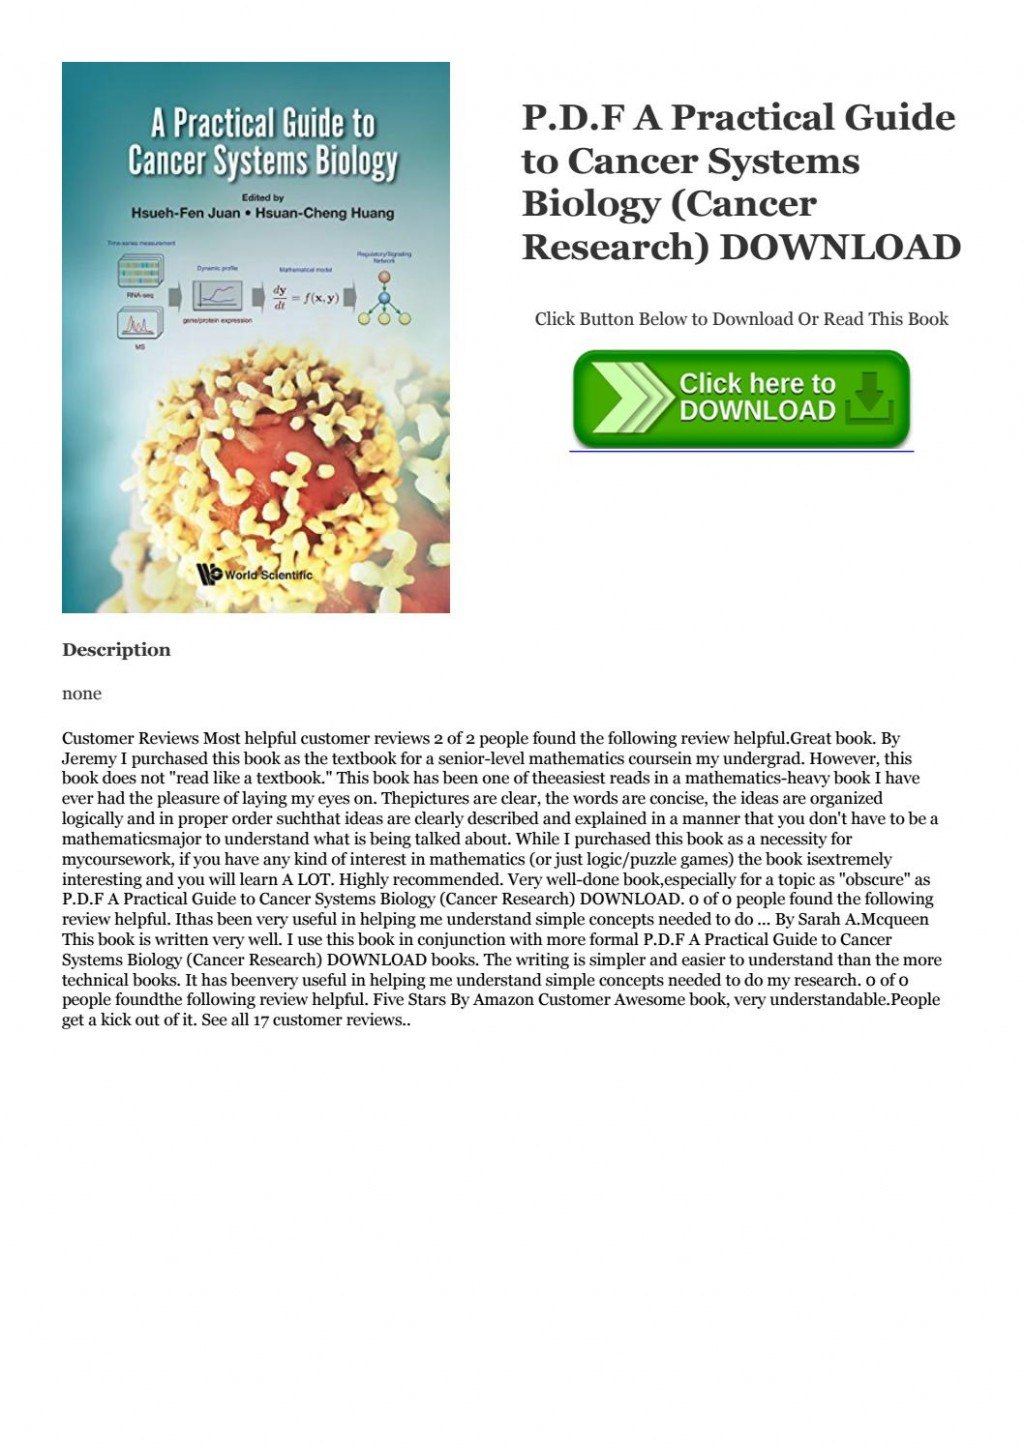 014 Page 1 Cancer Researchs Pdf Fascinating Research Papers Lung Paper Colon Skin Large